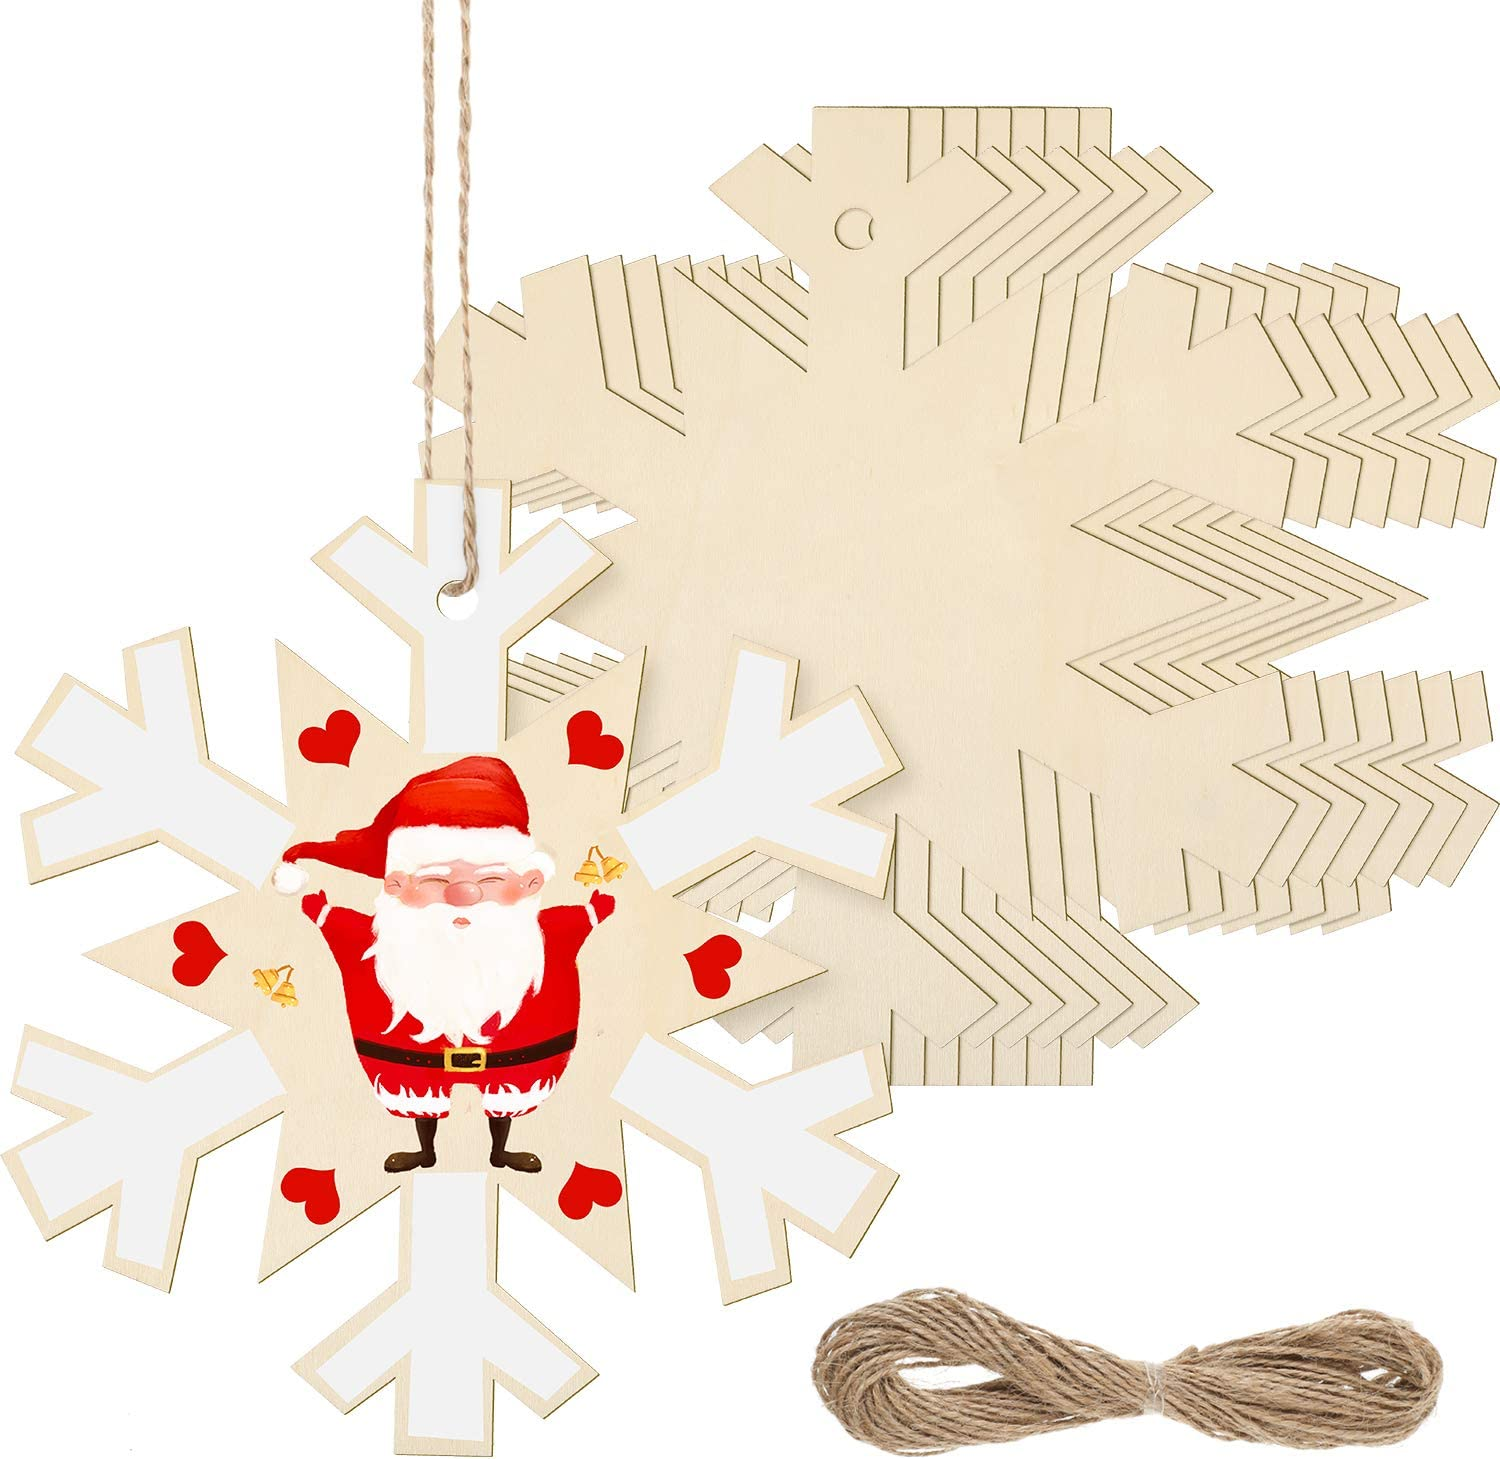 8 Pieces Christmas Wooden Cutouts 11 x 11 Inch Large Wooden Snowflake Cutouts Unfinished Wooden Snowflake with 32.8 ft Twines for Christmas DIY Decor